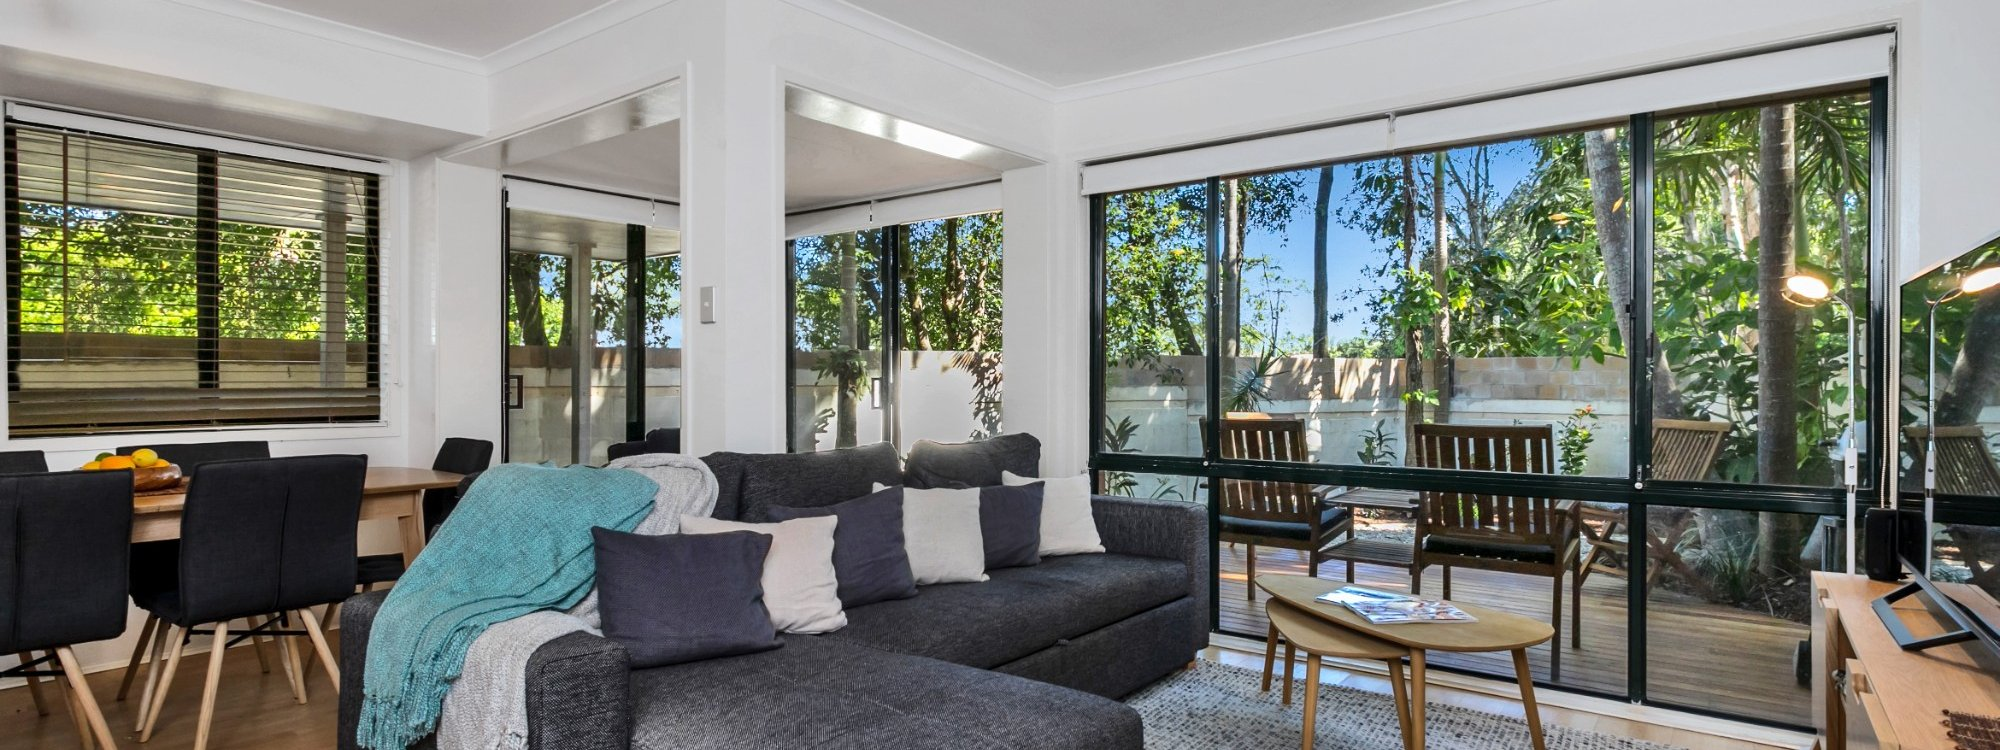 Mahogany Lodge - Byron Bay - lounge area to deck